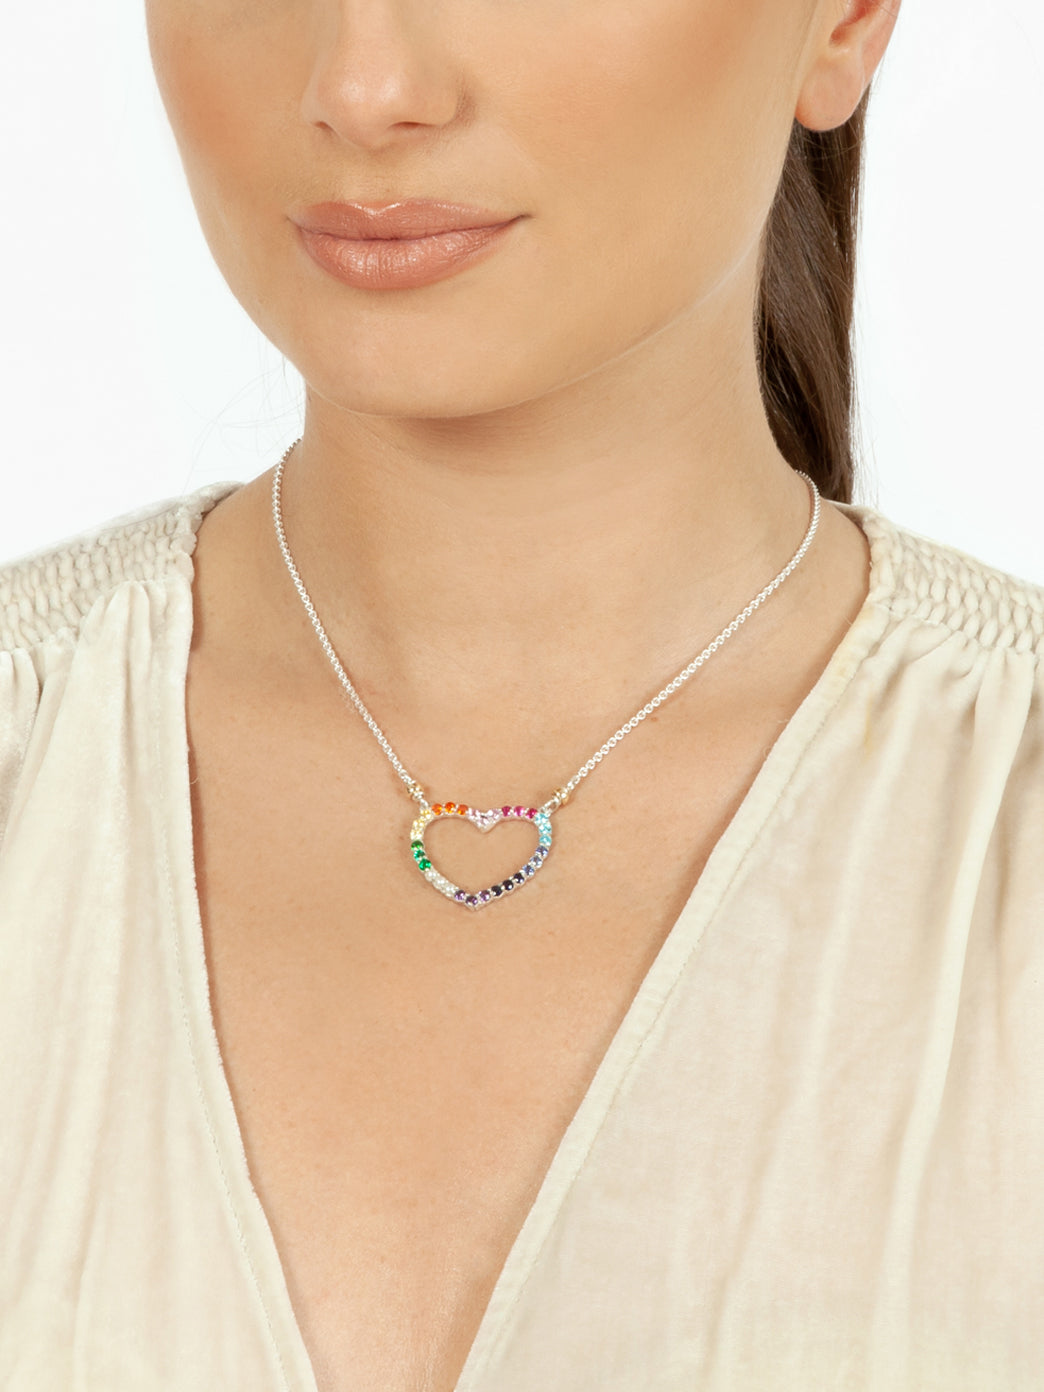 Fiorina Jewellery Heart Love Necklace Chakra Model